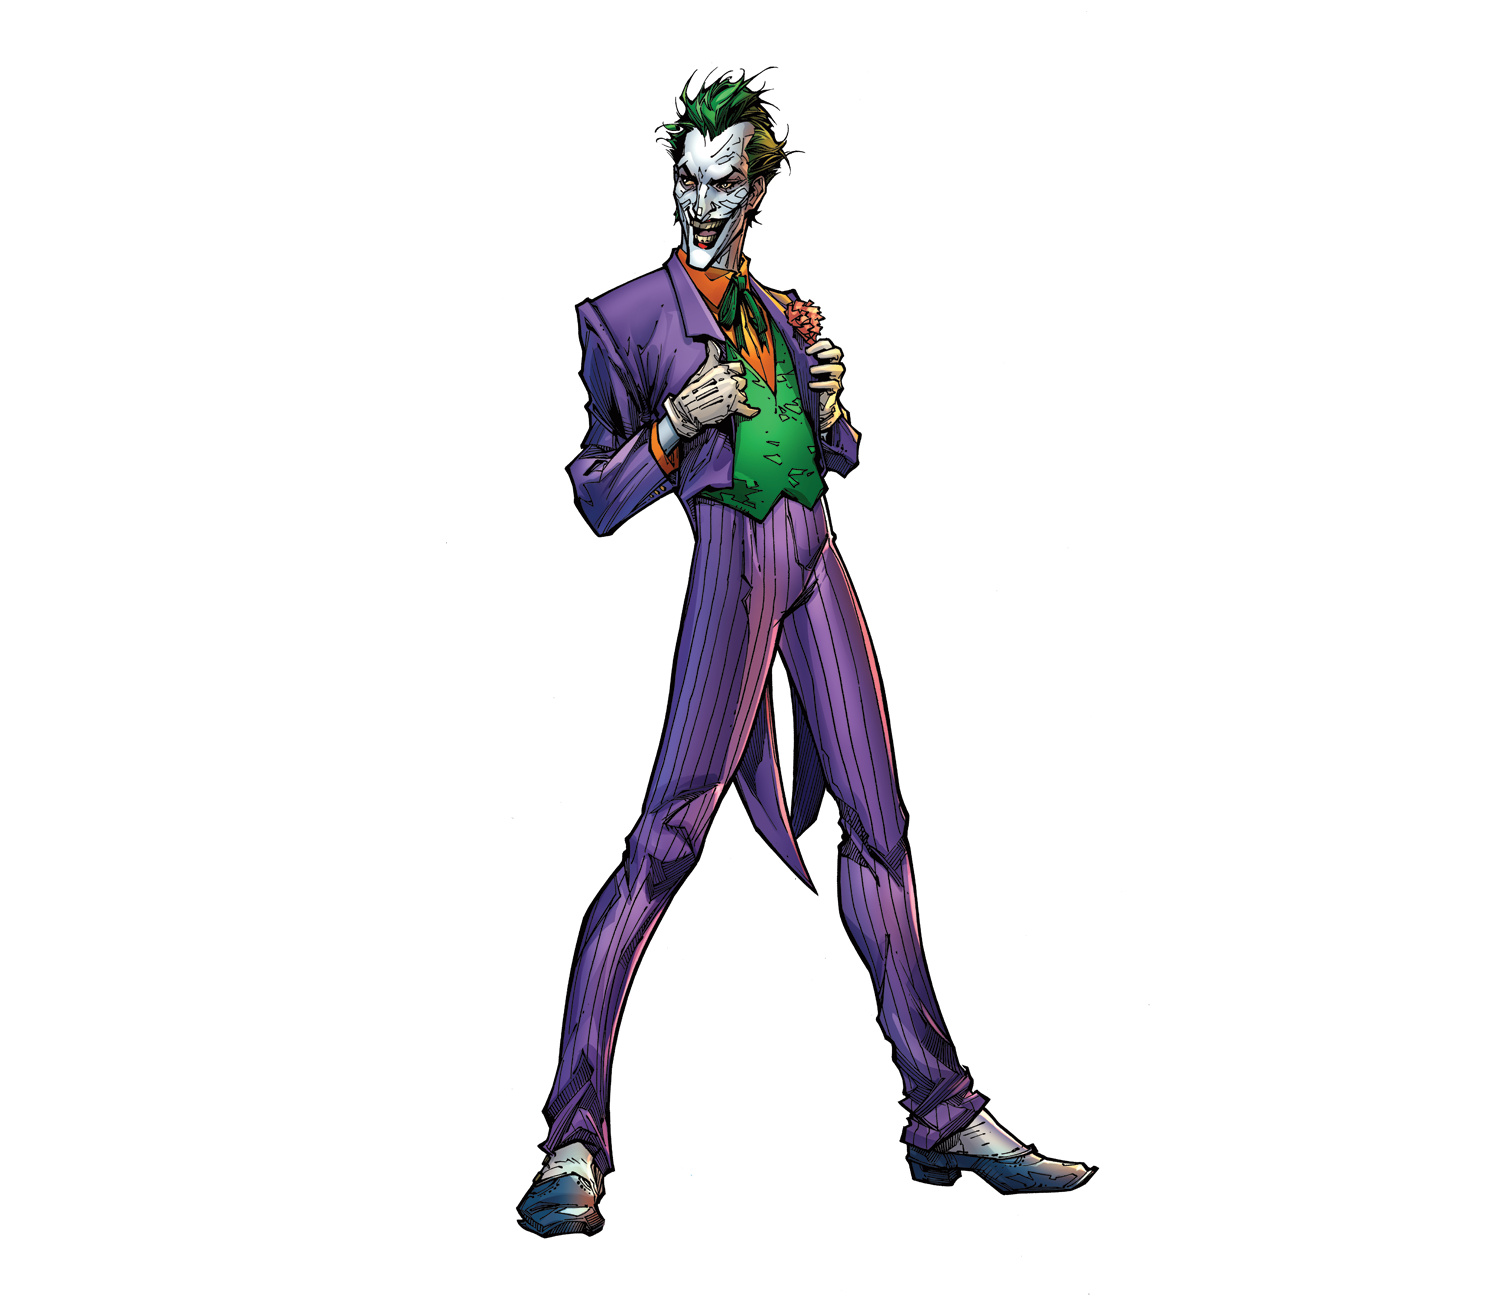 Batman Joker PNG HD - Joker PNG